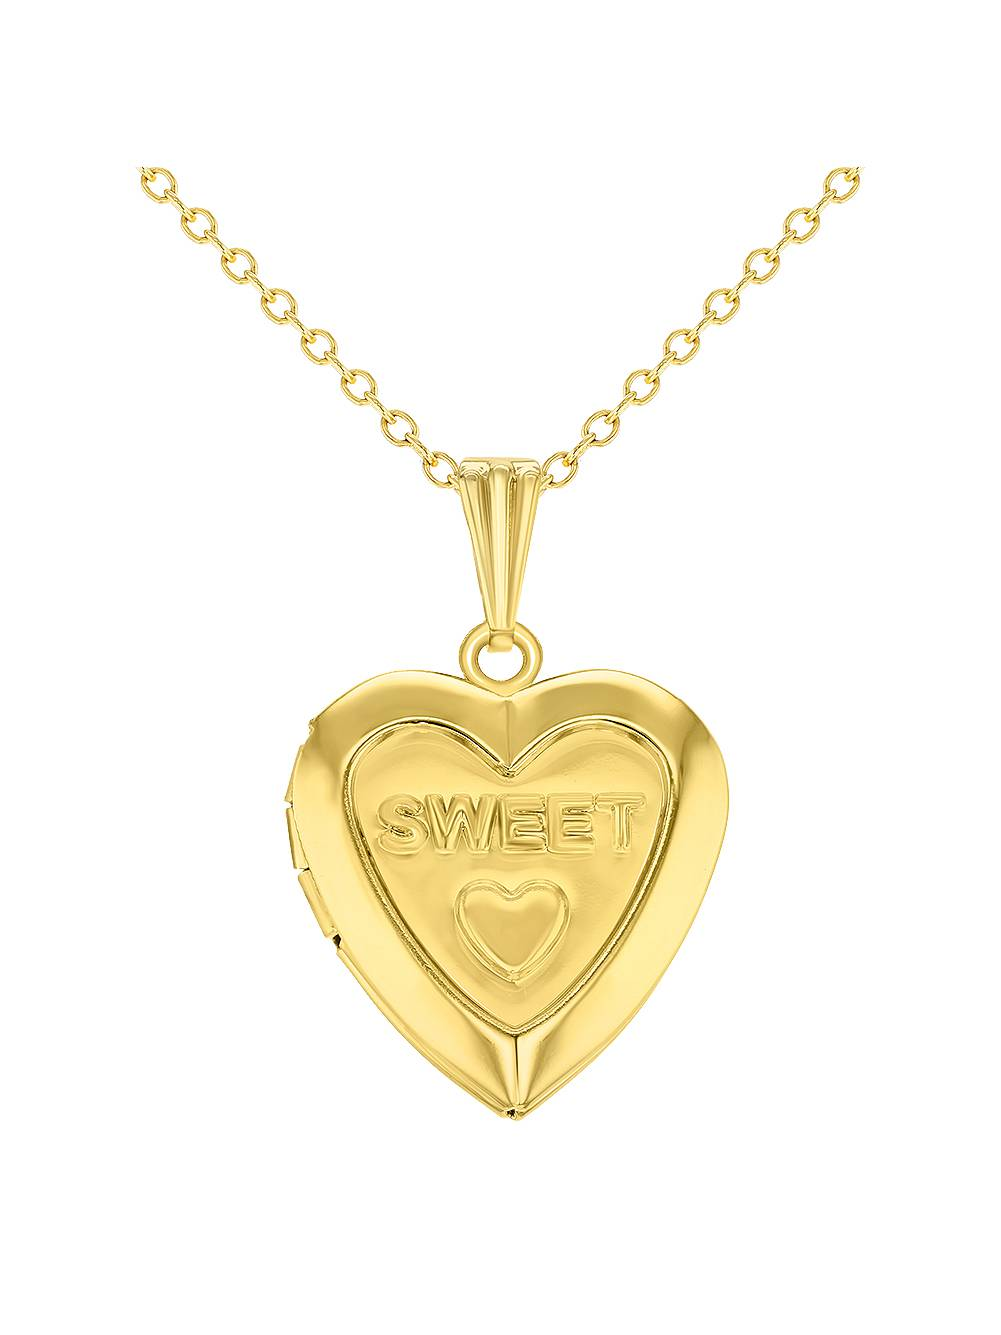 childrens small to sizes sue for designs way ideas in children the available please suitable siblings same and they can here personalized click locket signature be are jewellery lockets ella see